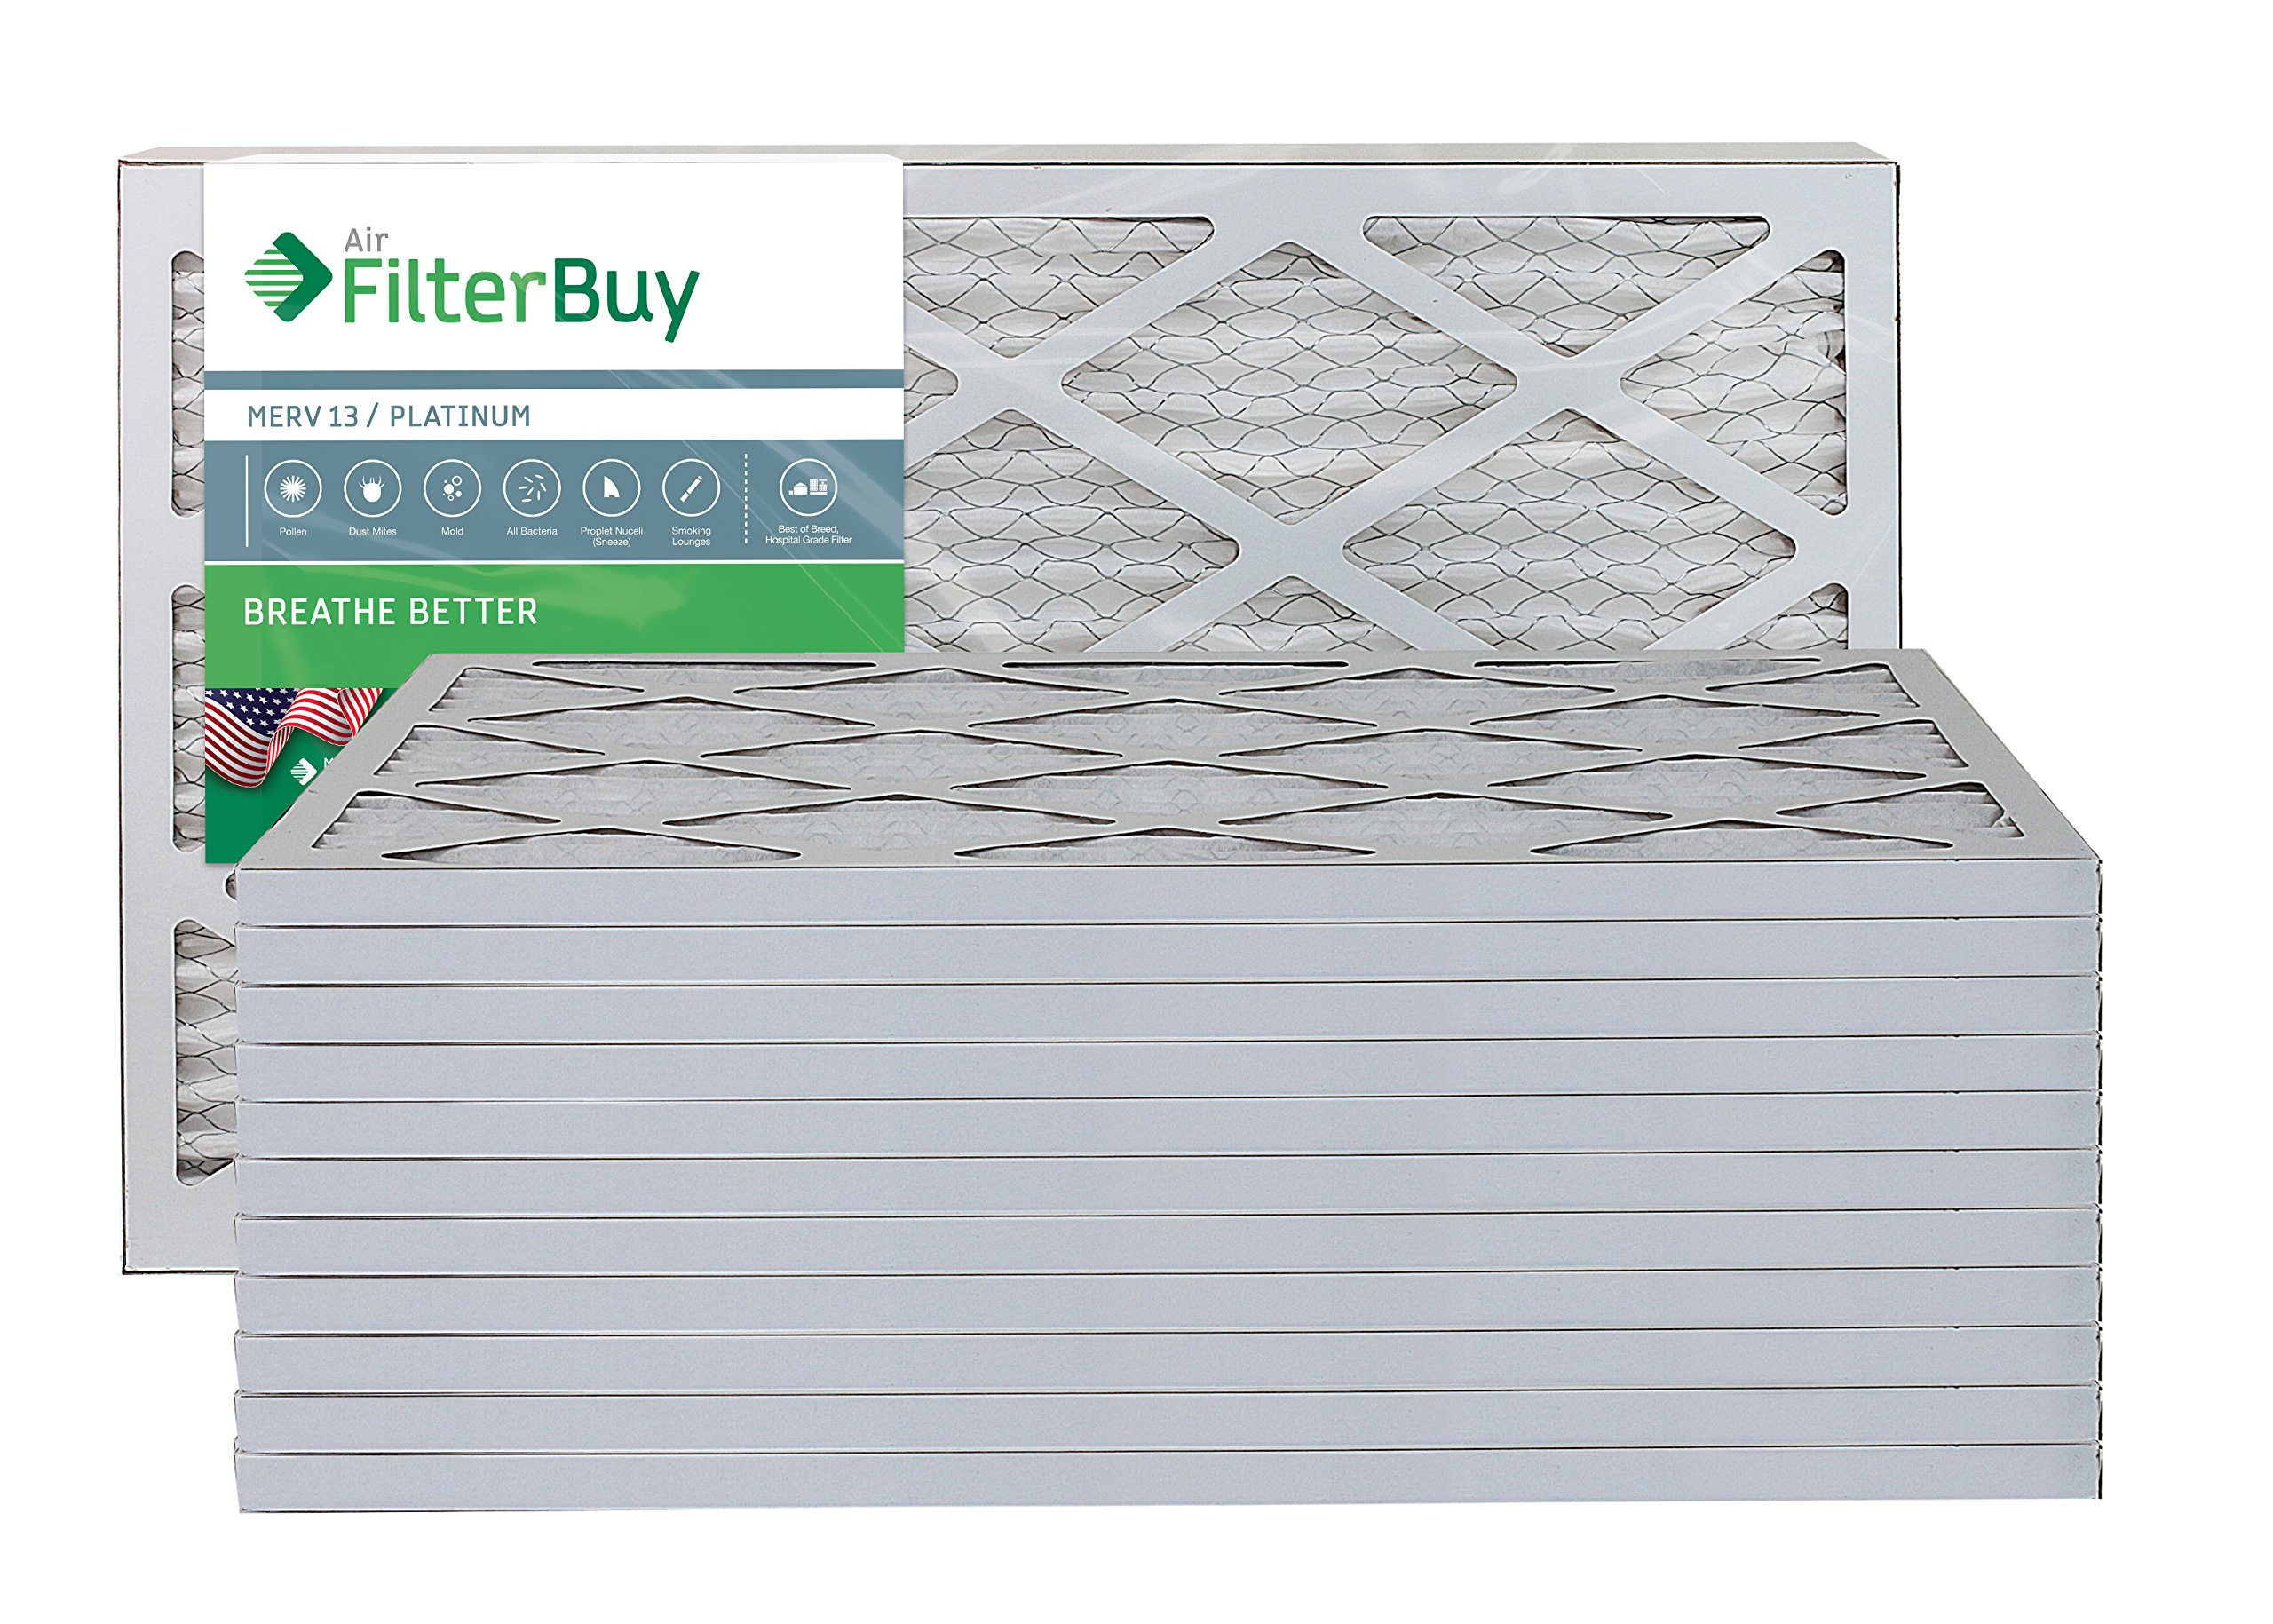 AFB Platinum MERV 13 16x20x1 Pleated AC Furnace Air Filter. Pack of 12 Filters. 100% produced in the USA.